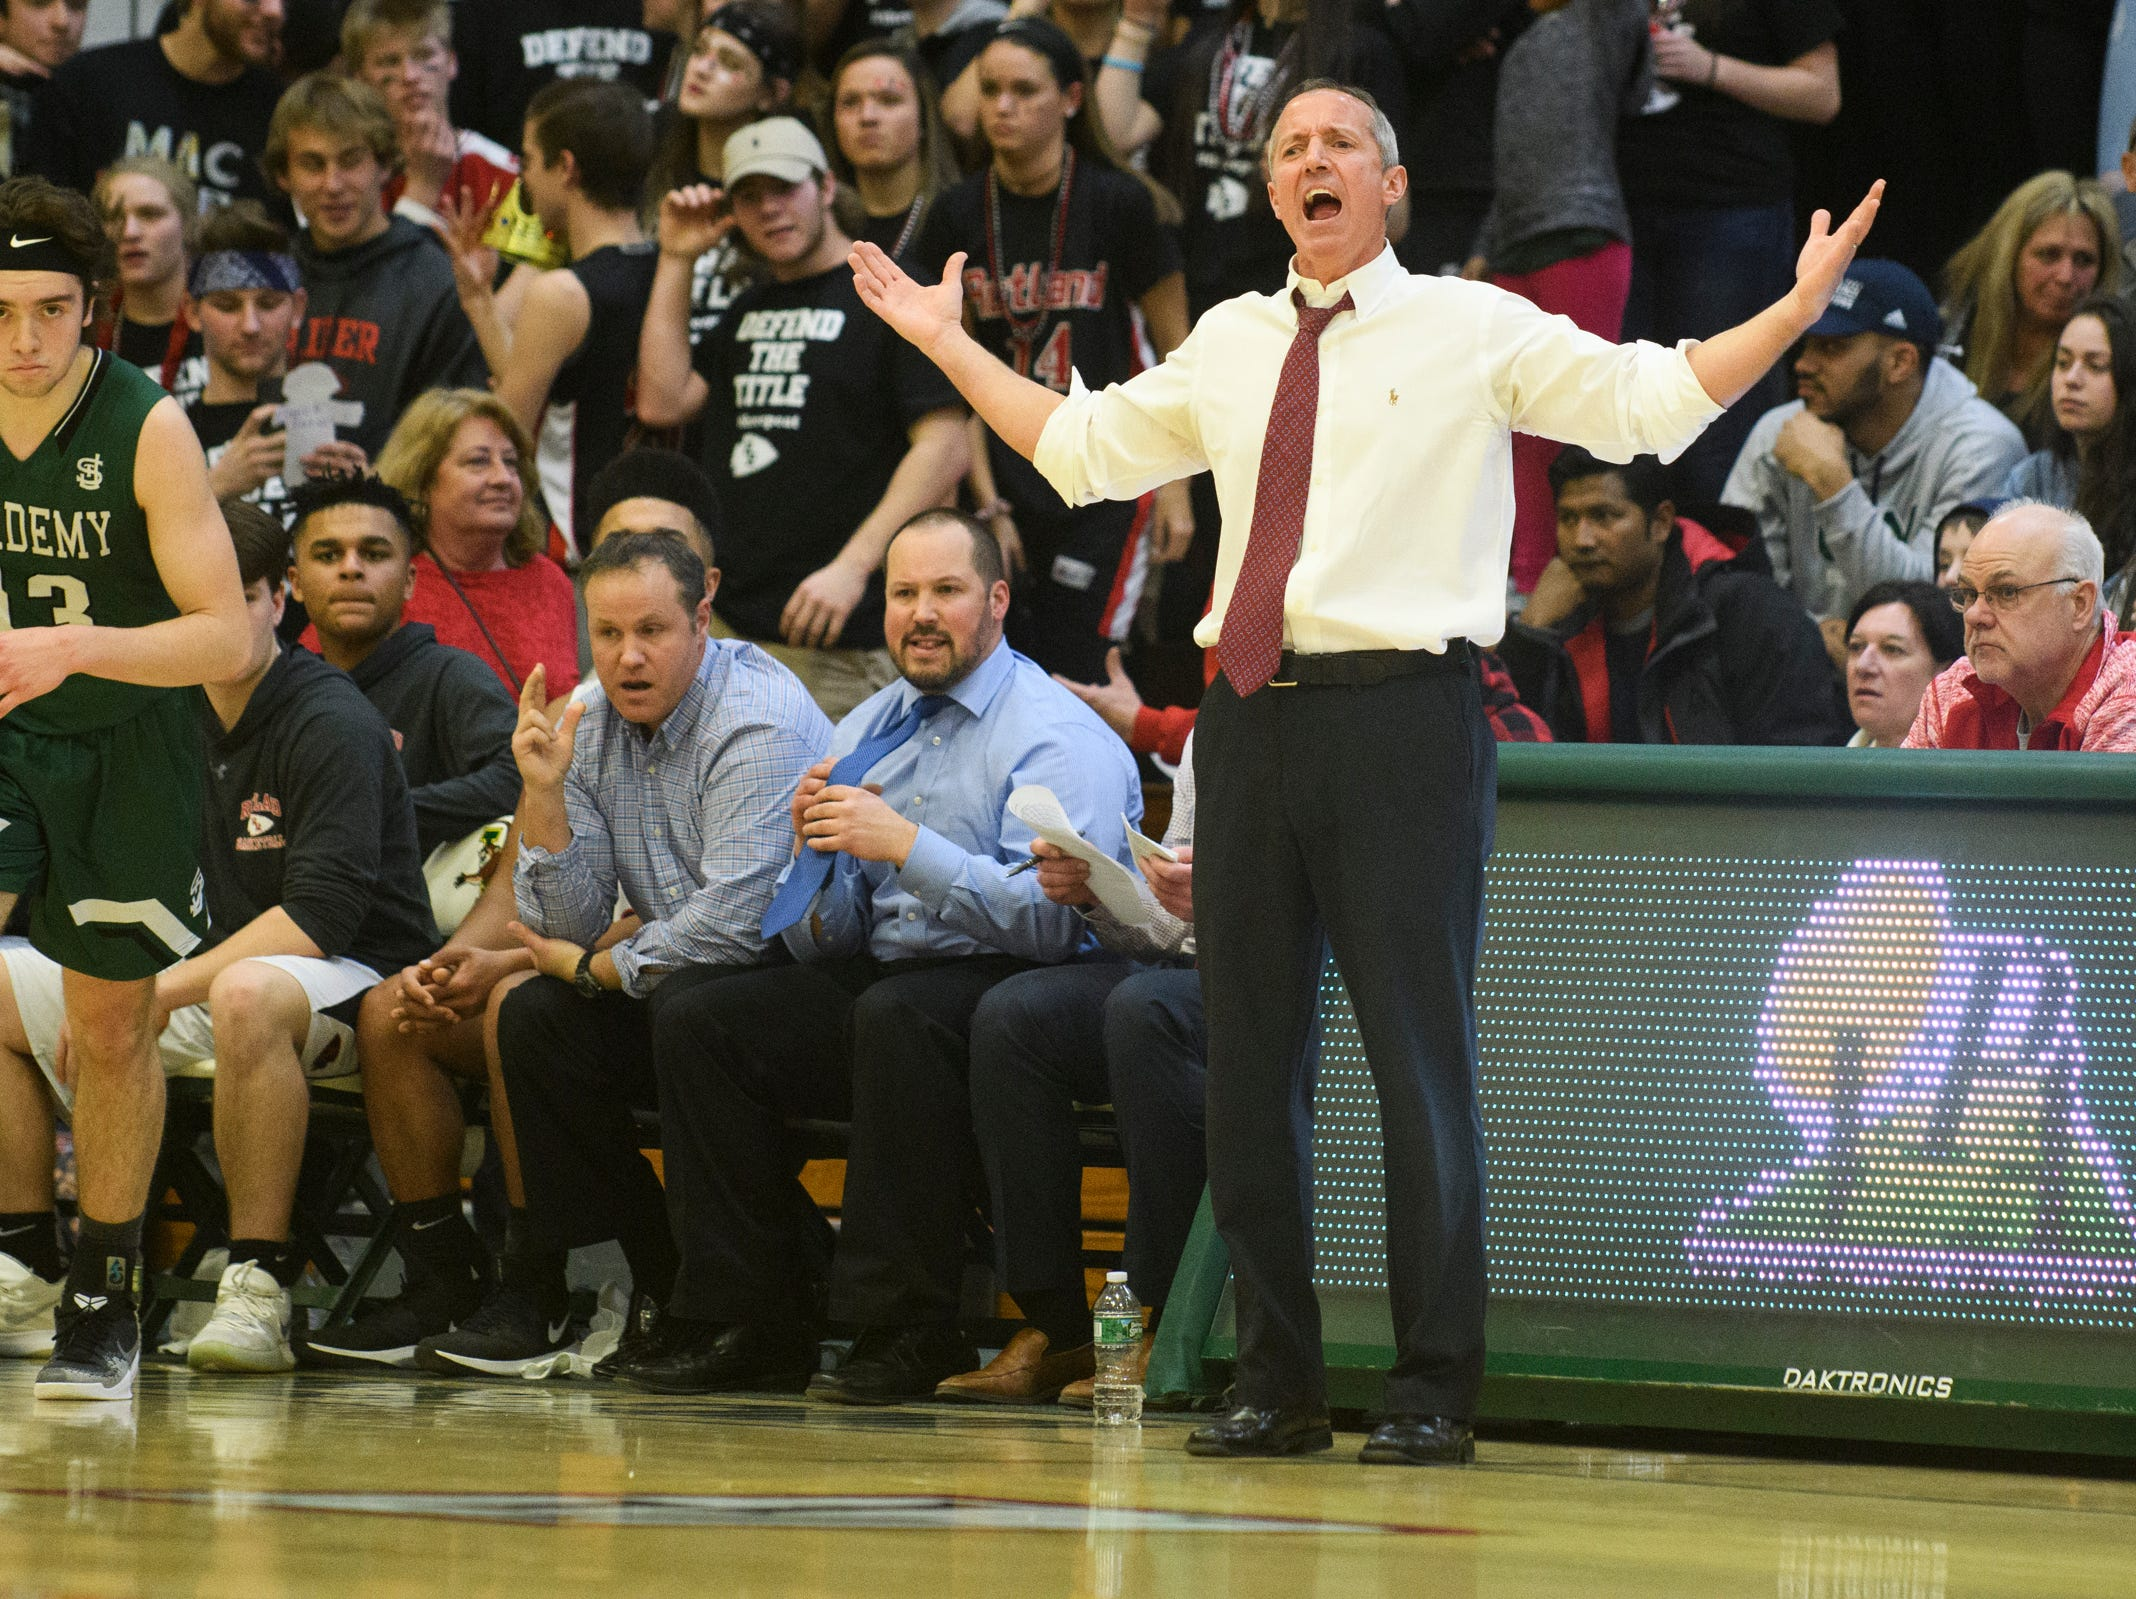 Rutland head coach Mike Wood questions a call on the court during the DI boys basketball championship game between the St. Johnsbury Hilltoppers and the Rutland Raiders at Patrick Gym on Sunday afternoon March 17, 2019 in Burlington, Vermont.